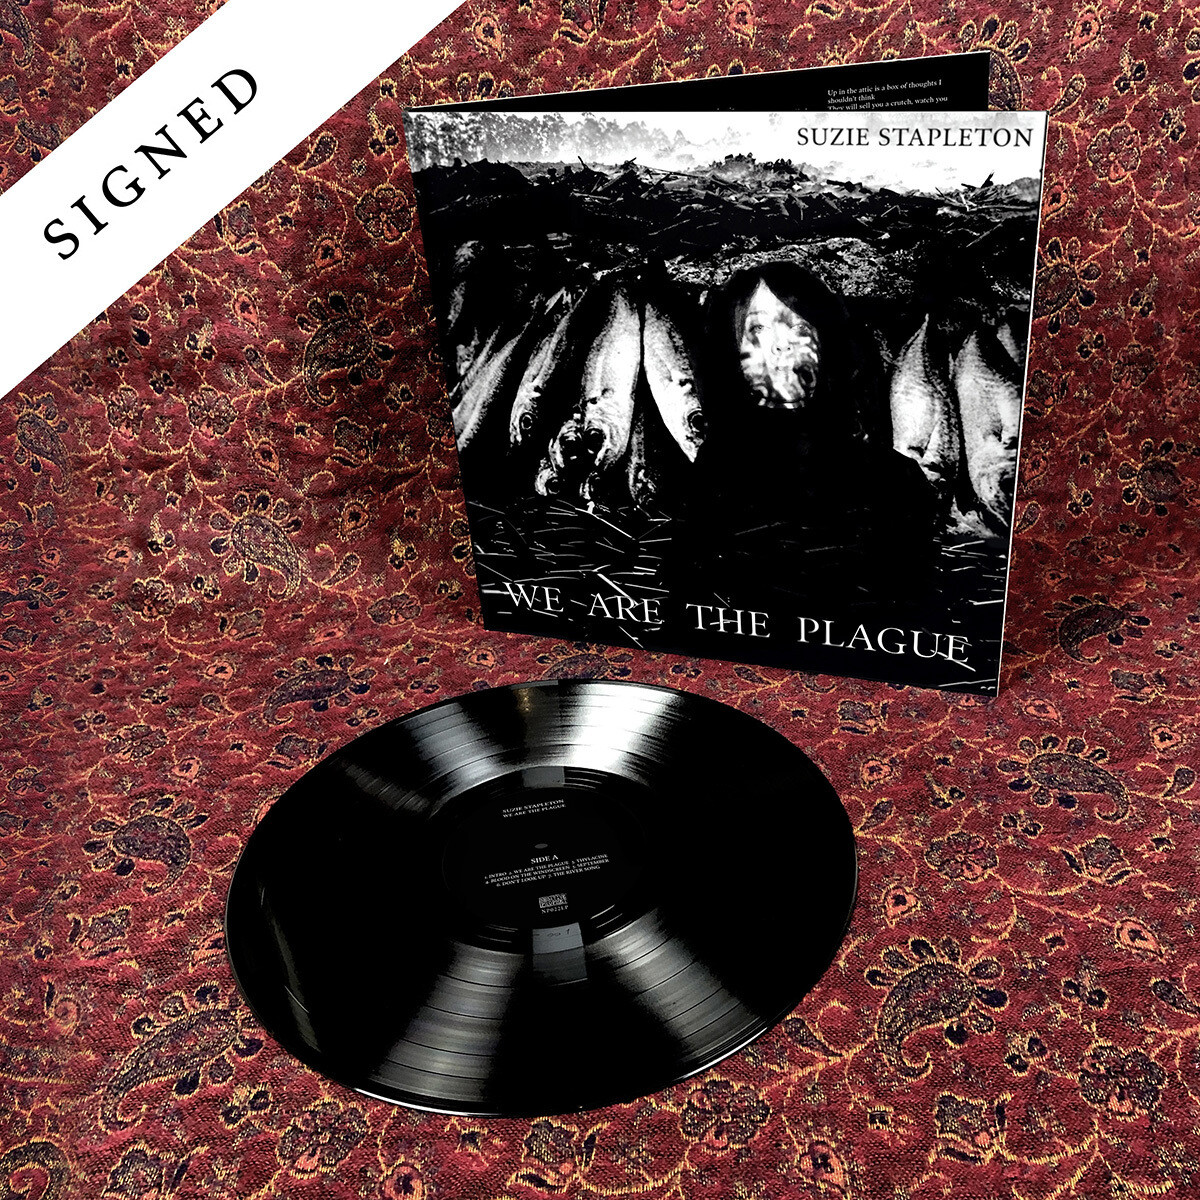 "We Are The Plague - 12"" Vinyl (Signed)"